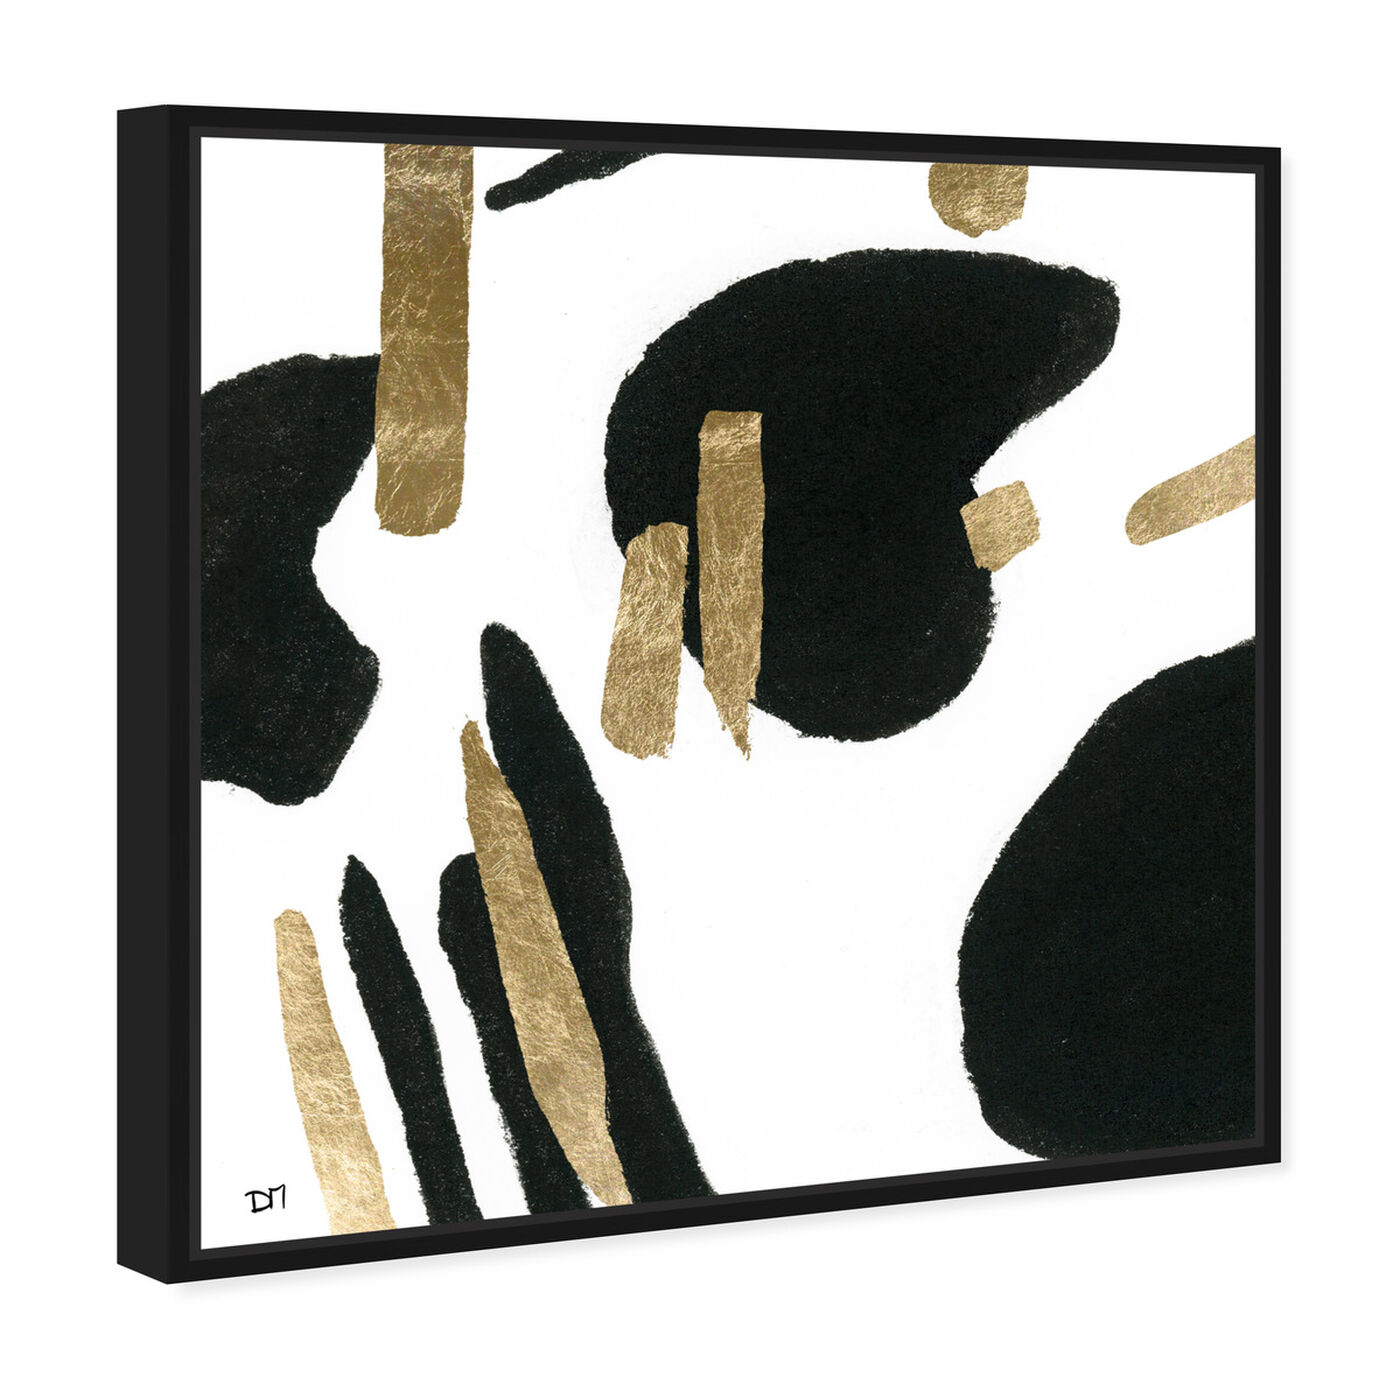 Angled view of Bigger Gold featuring abstract and paint art.